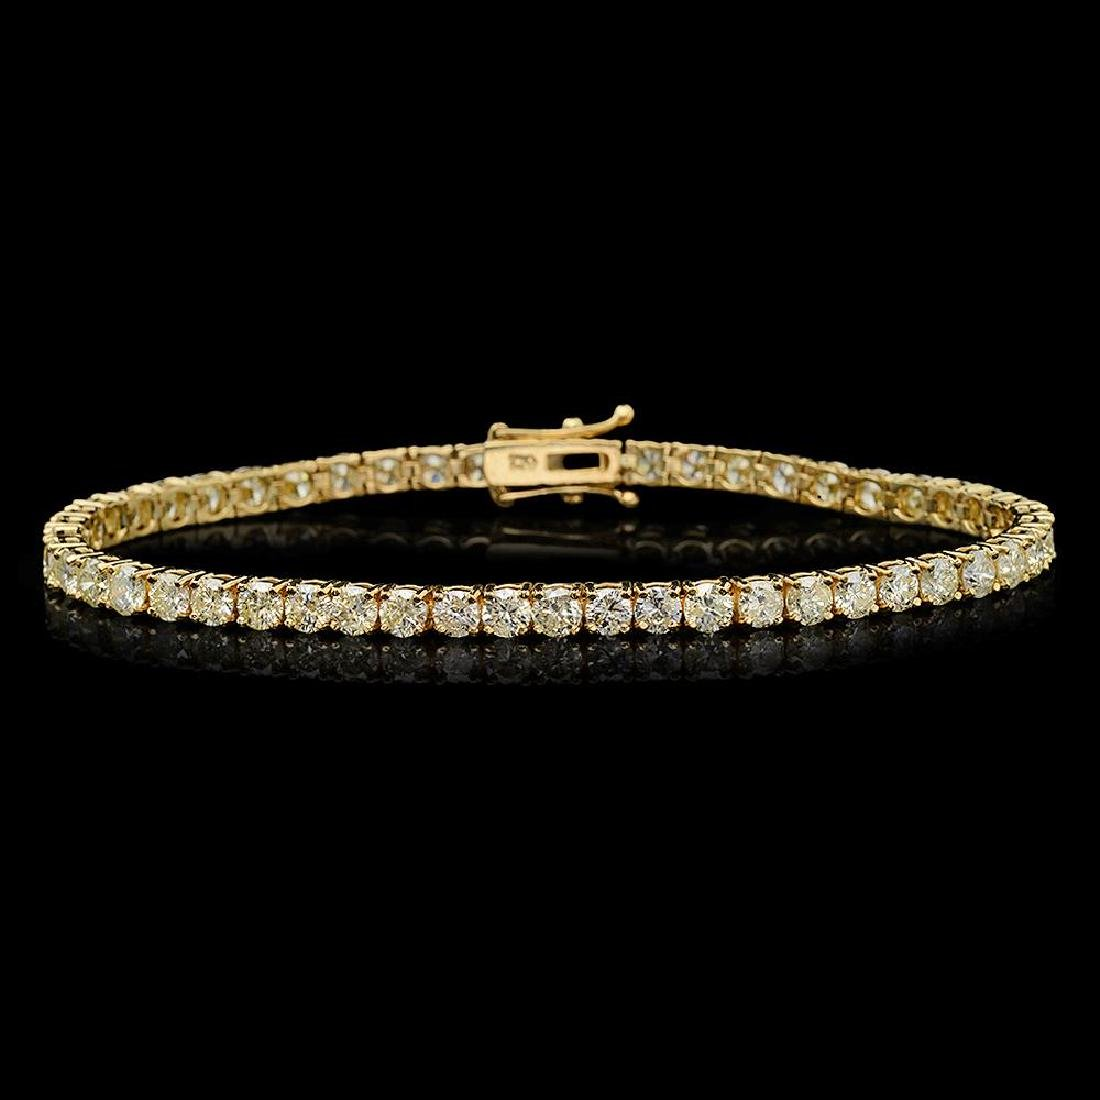 18K Gold 7.85ct Diamond Bracelet